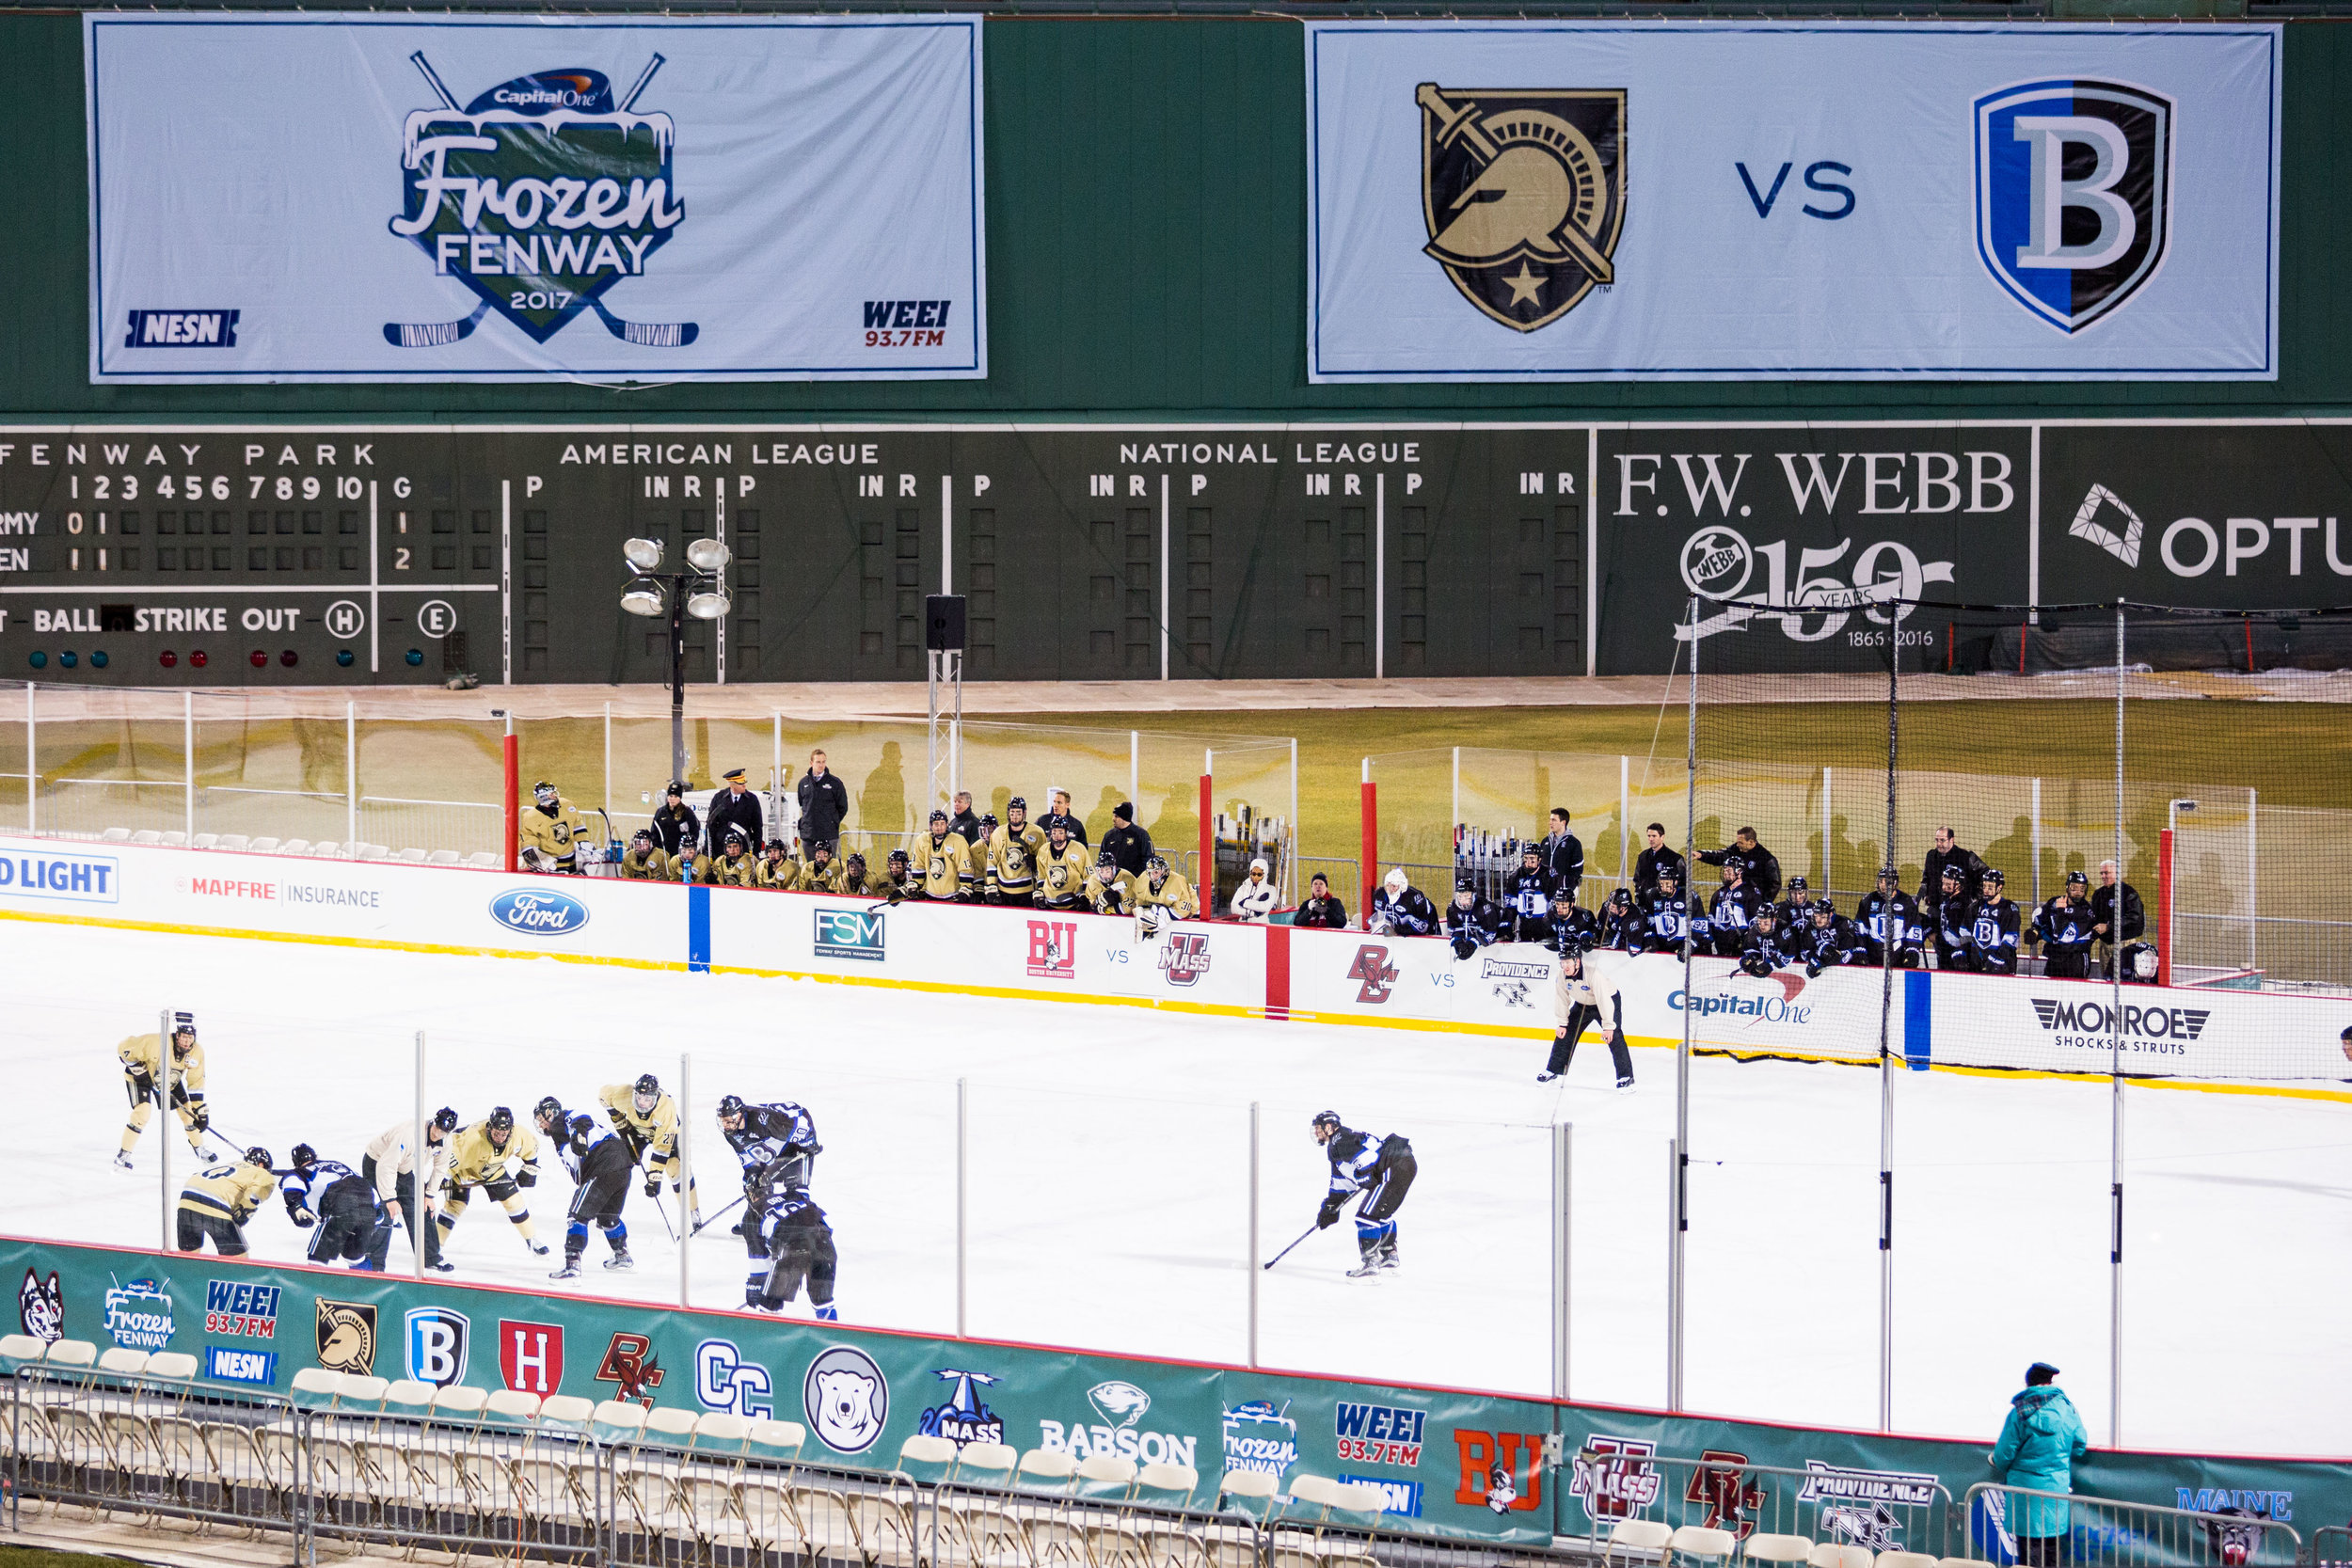 Bentley and Army face off during Frozen Fenway 2017